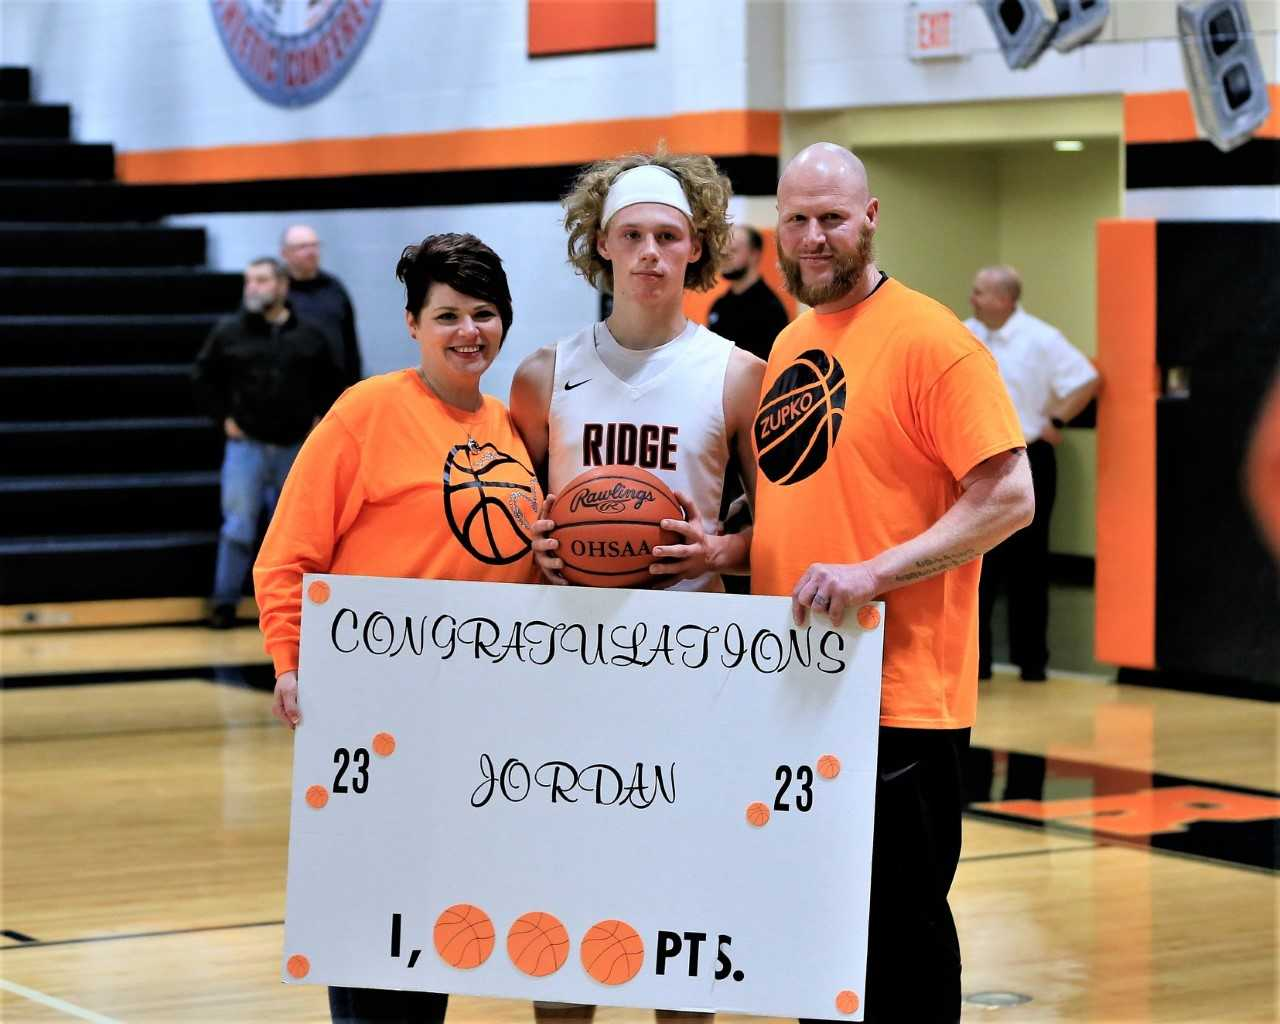 Jordan-Zupko-notched-his-1,000th-career-point-Tuesday-night-